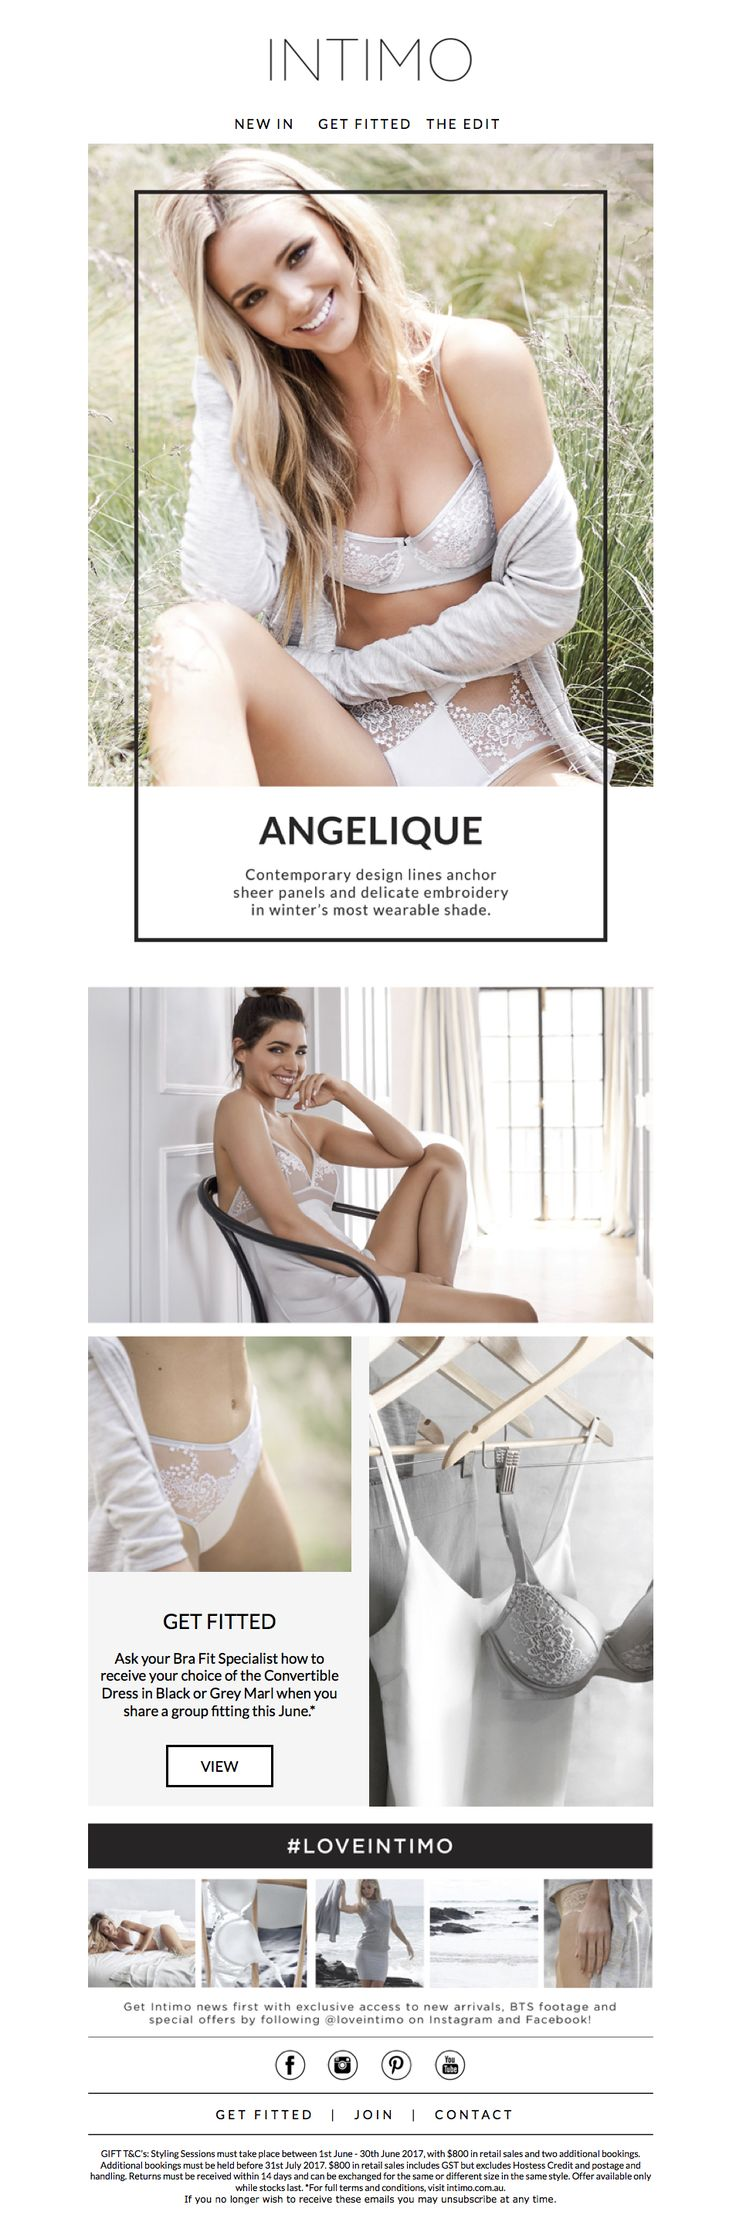 Intimo Lingerie: Intimo VIP Email. Introducing the Angelique Collection. www.intimo.com.au